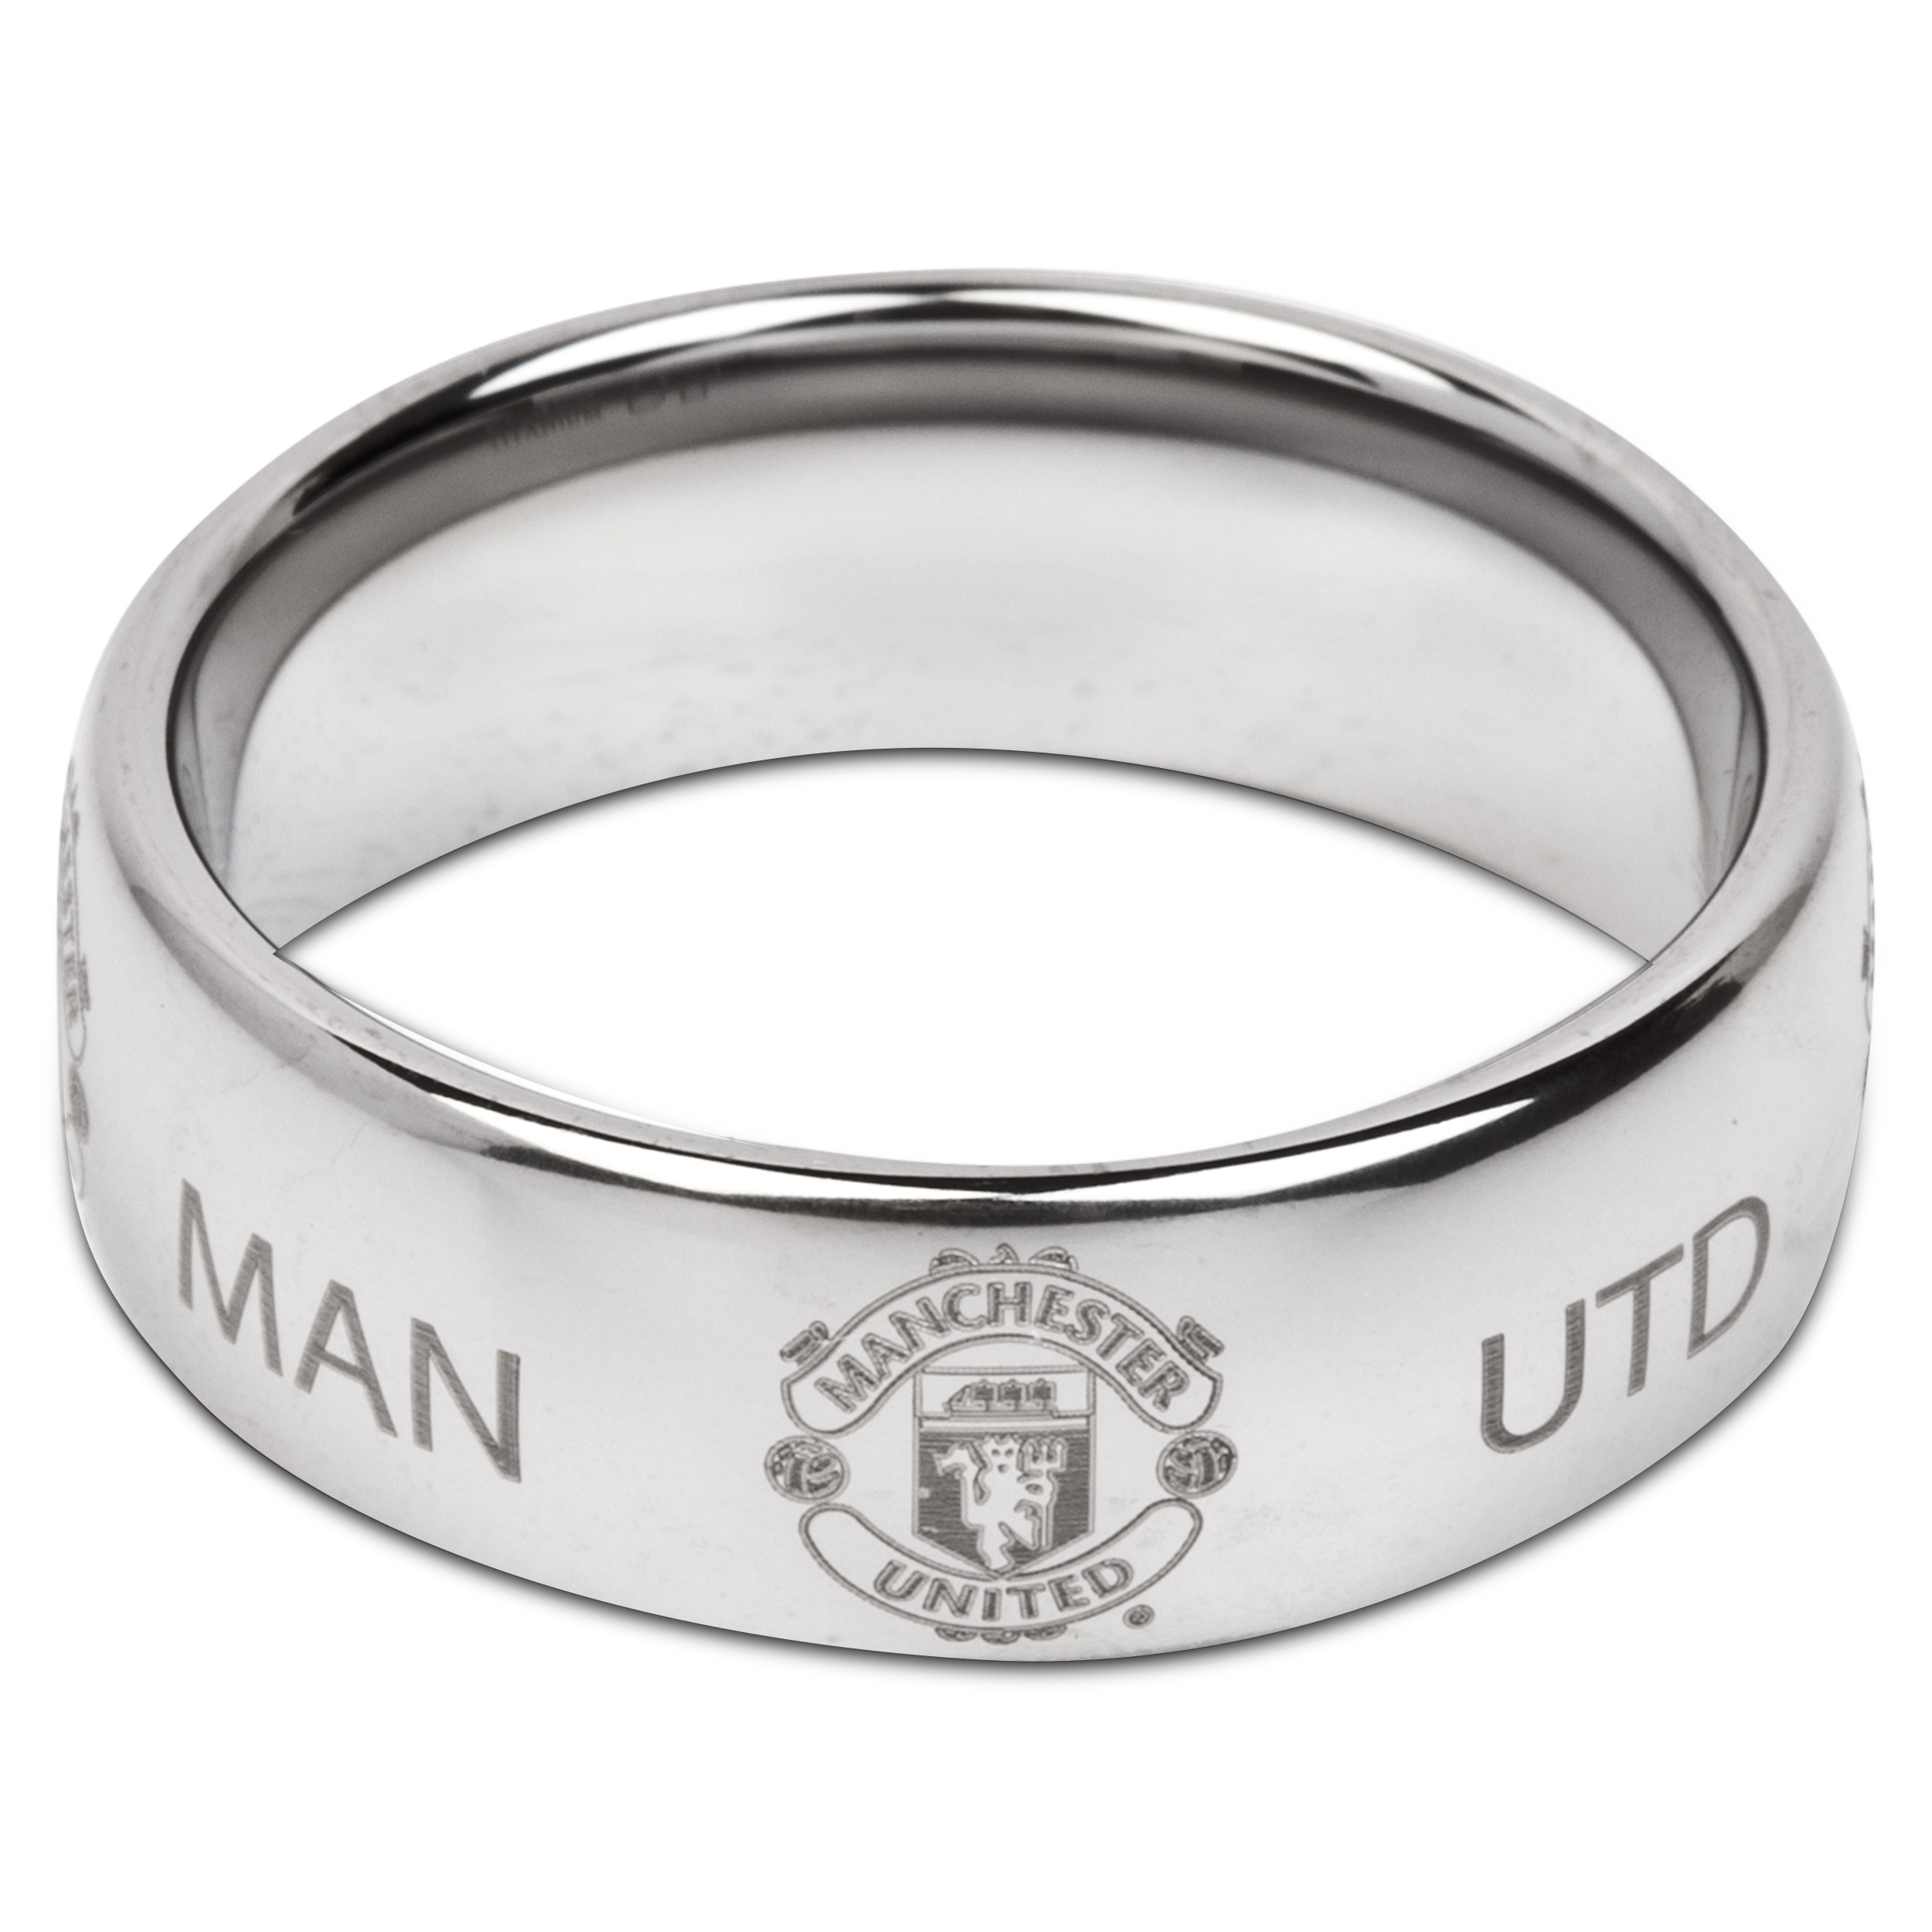 Manchester United Crest Ring - Super Titanium